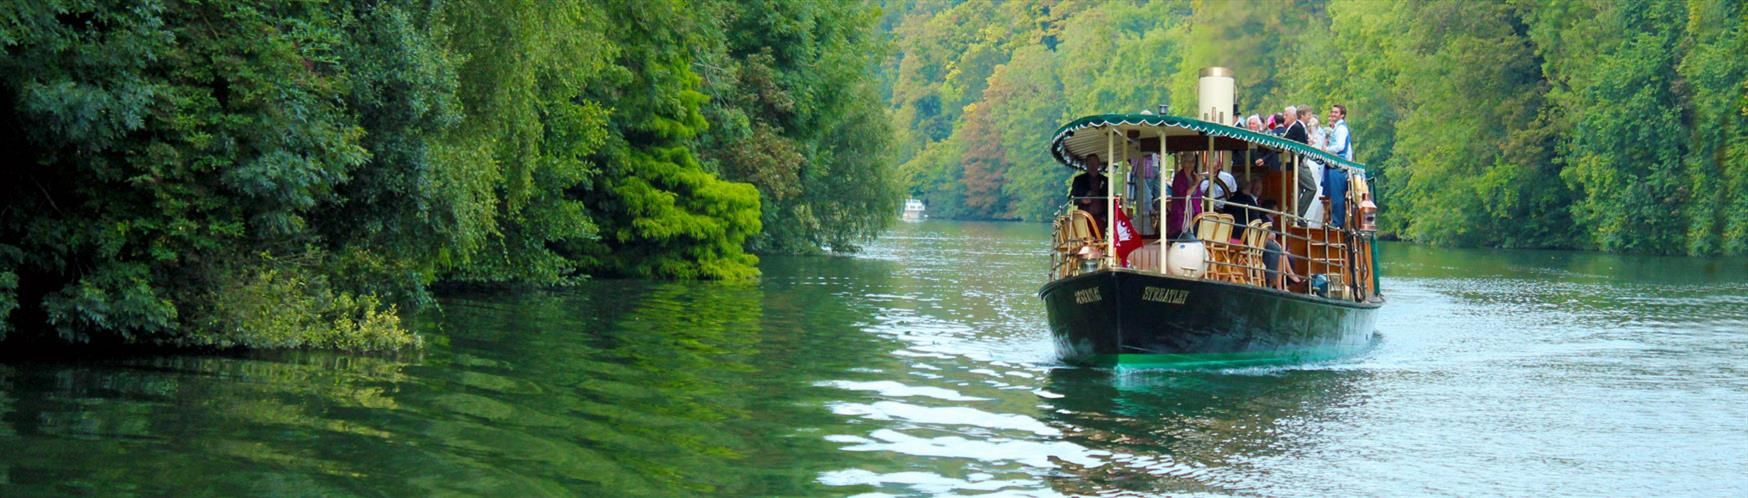 Unwind on a relaxing boat trip down the River Thames